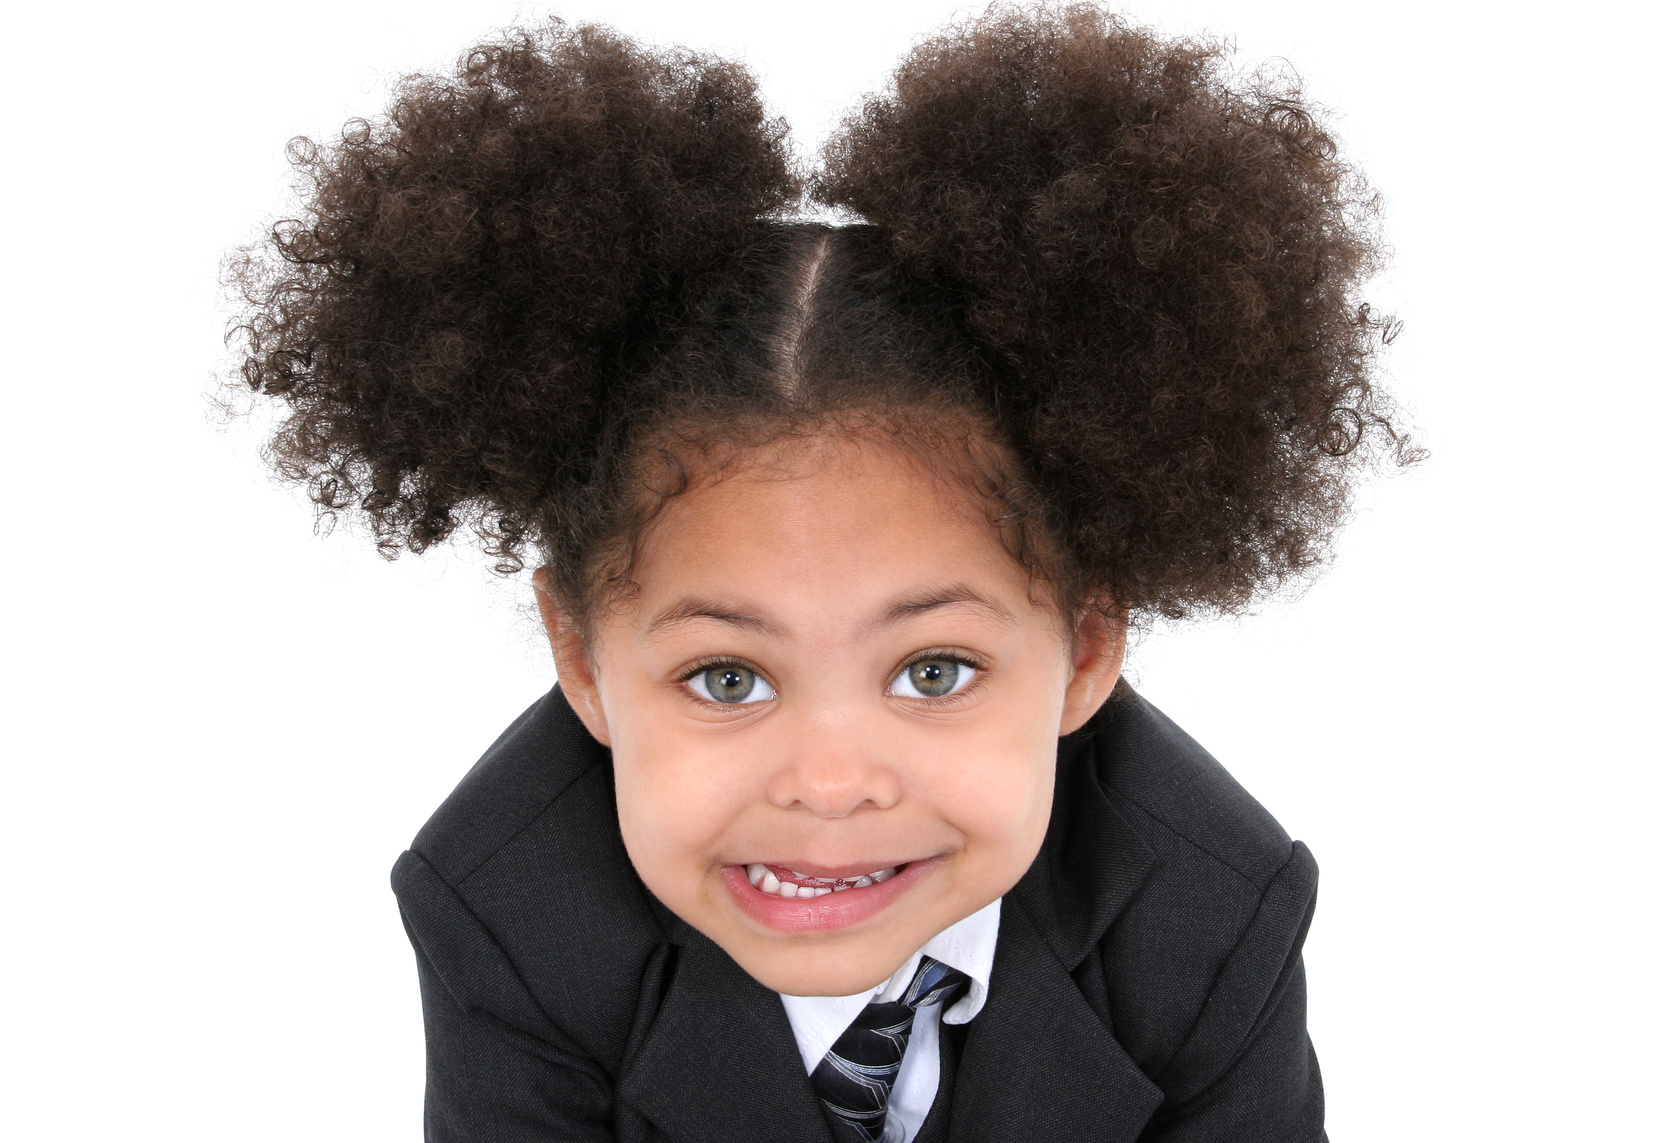 Six Ways to Inspire Your Child on Take Our Daughters and Sons to Work Day: April 23rd